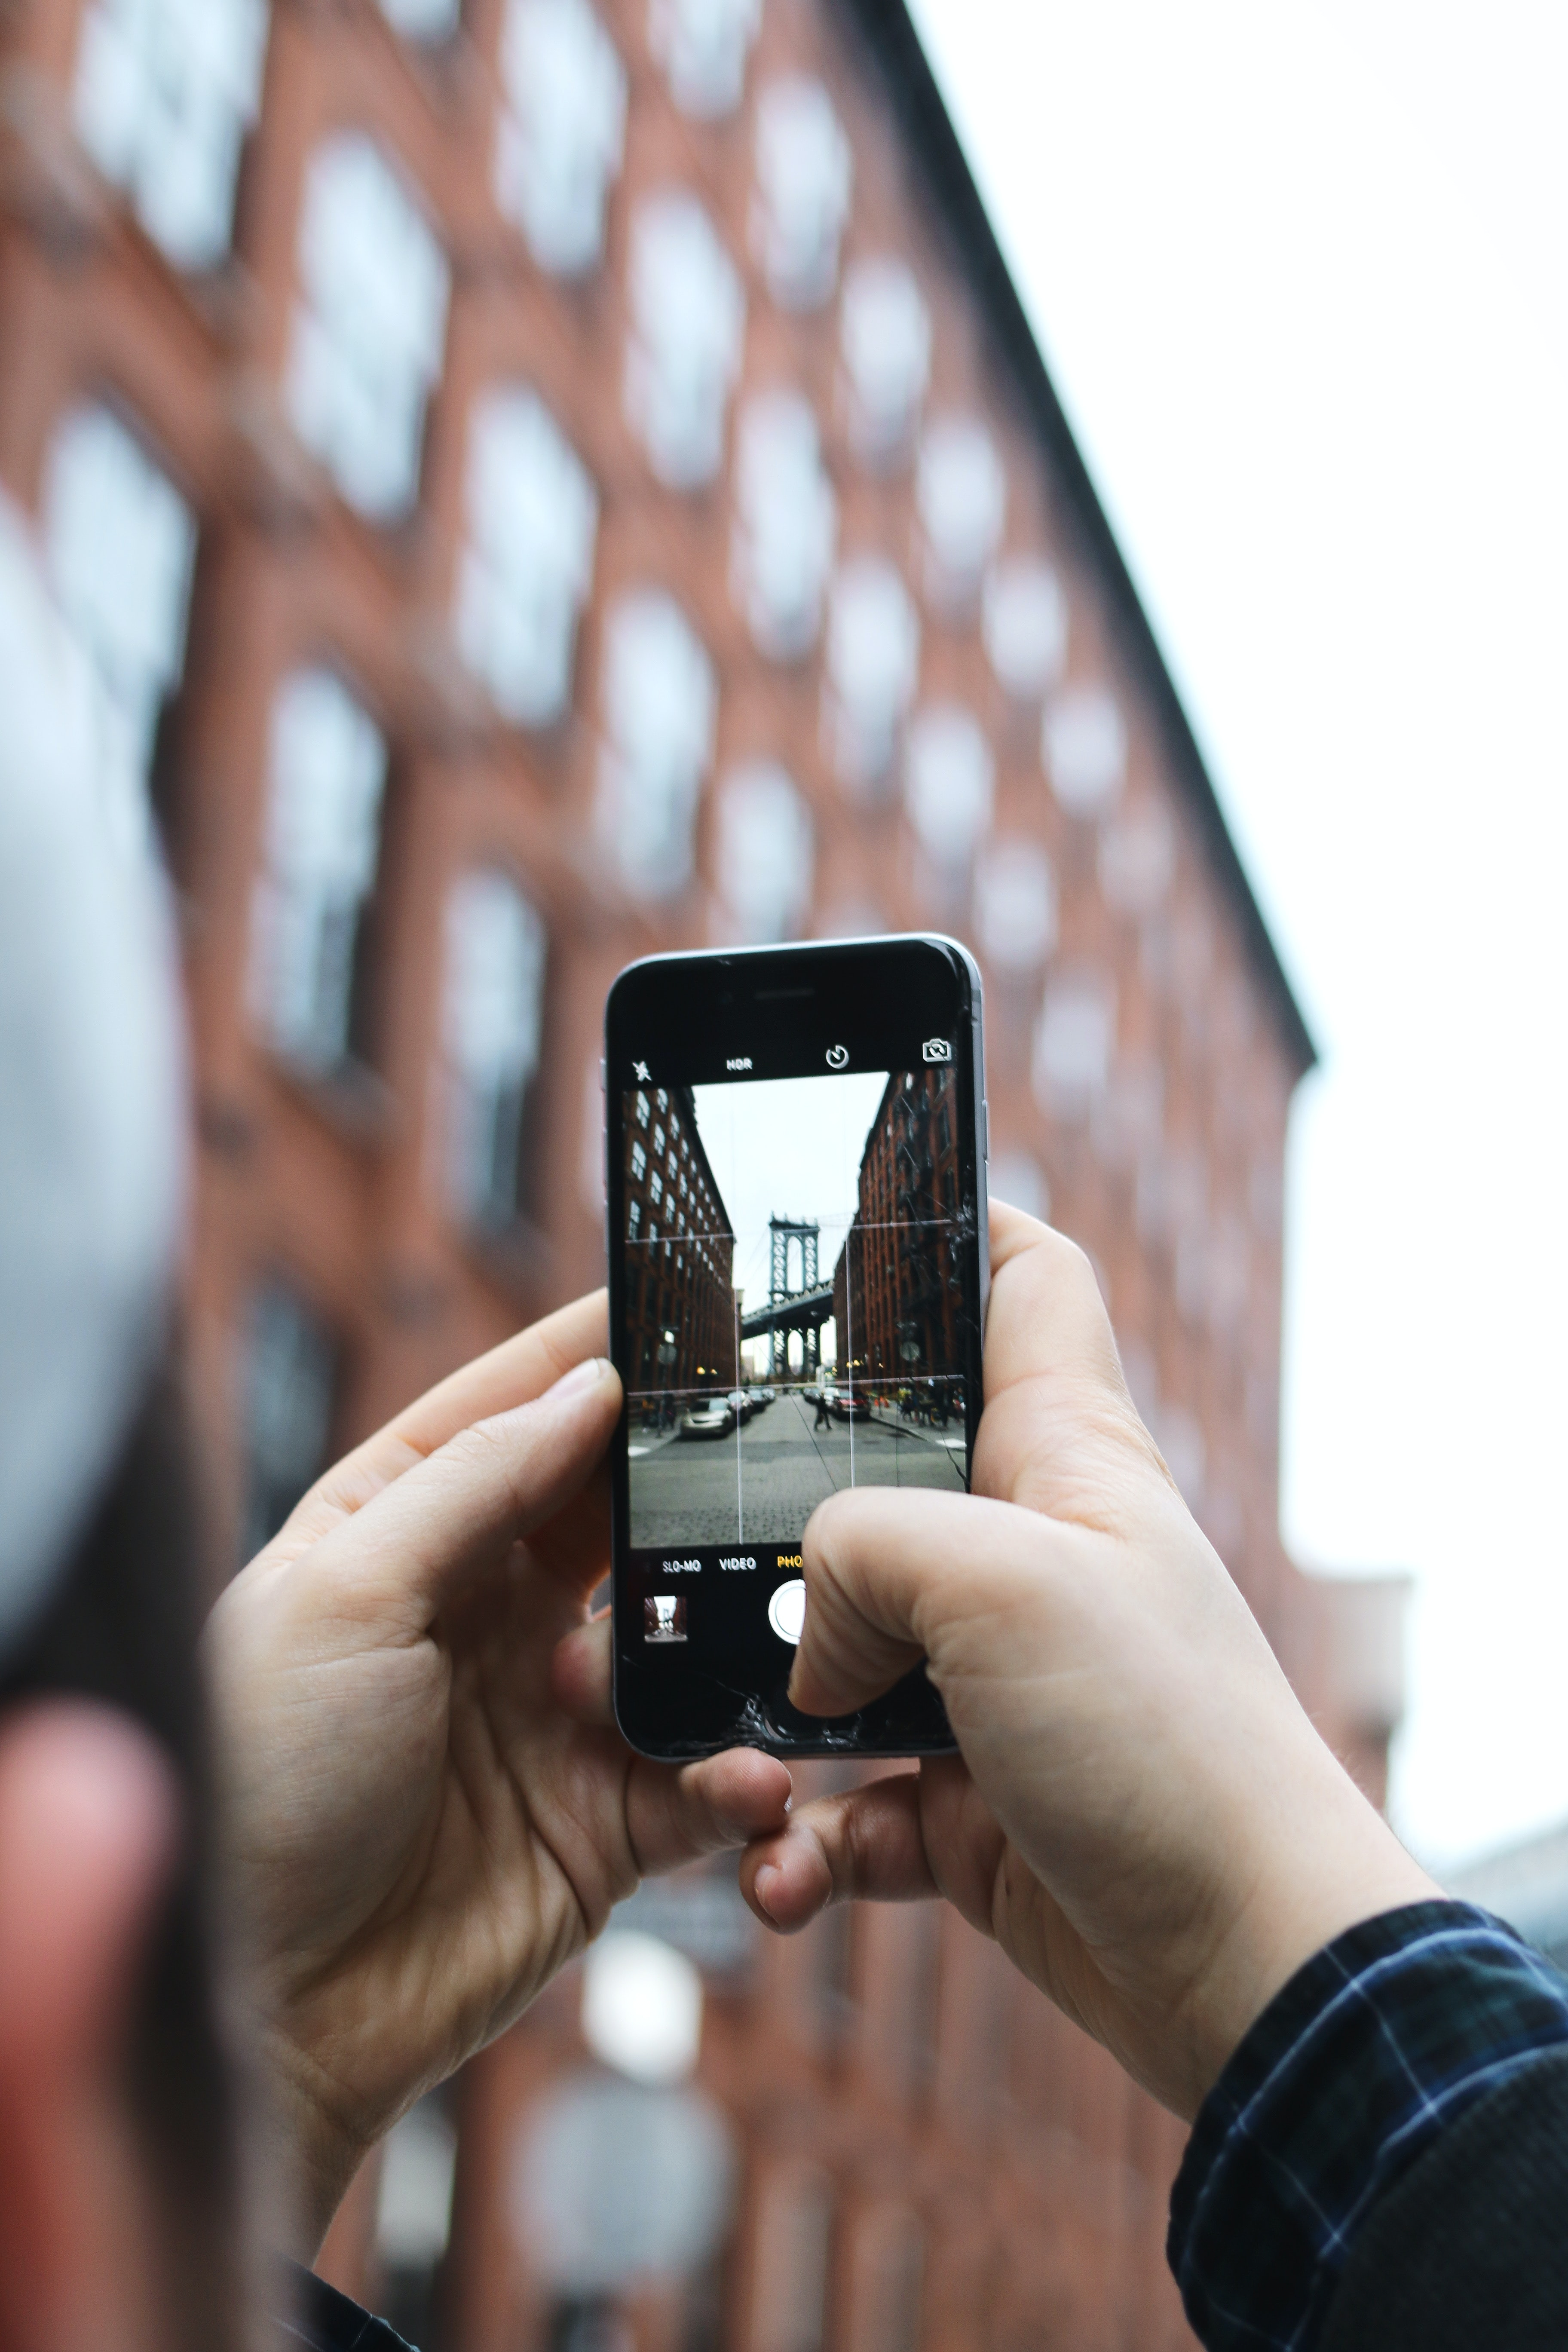 A person taking a picture of urban buildings with their phone.